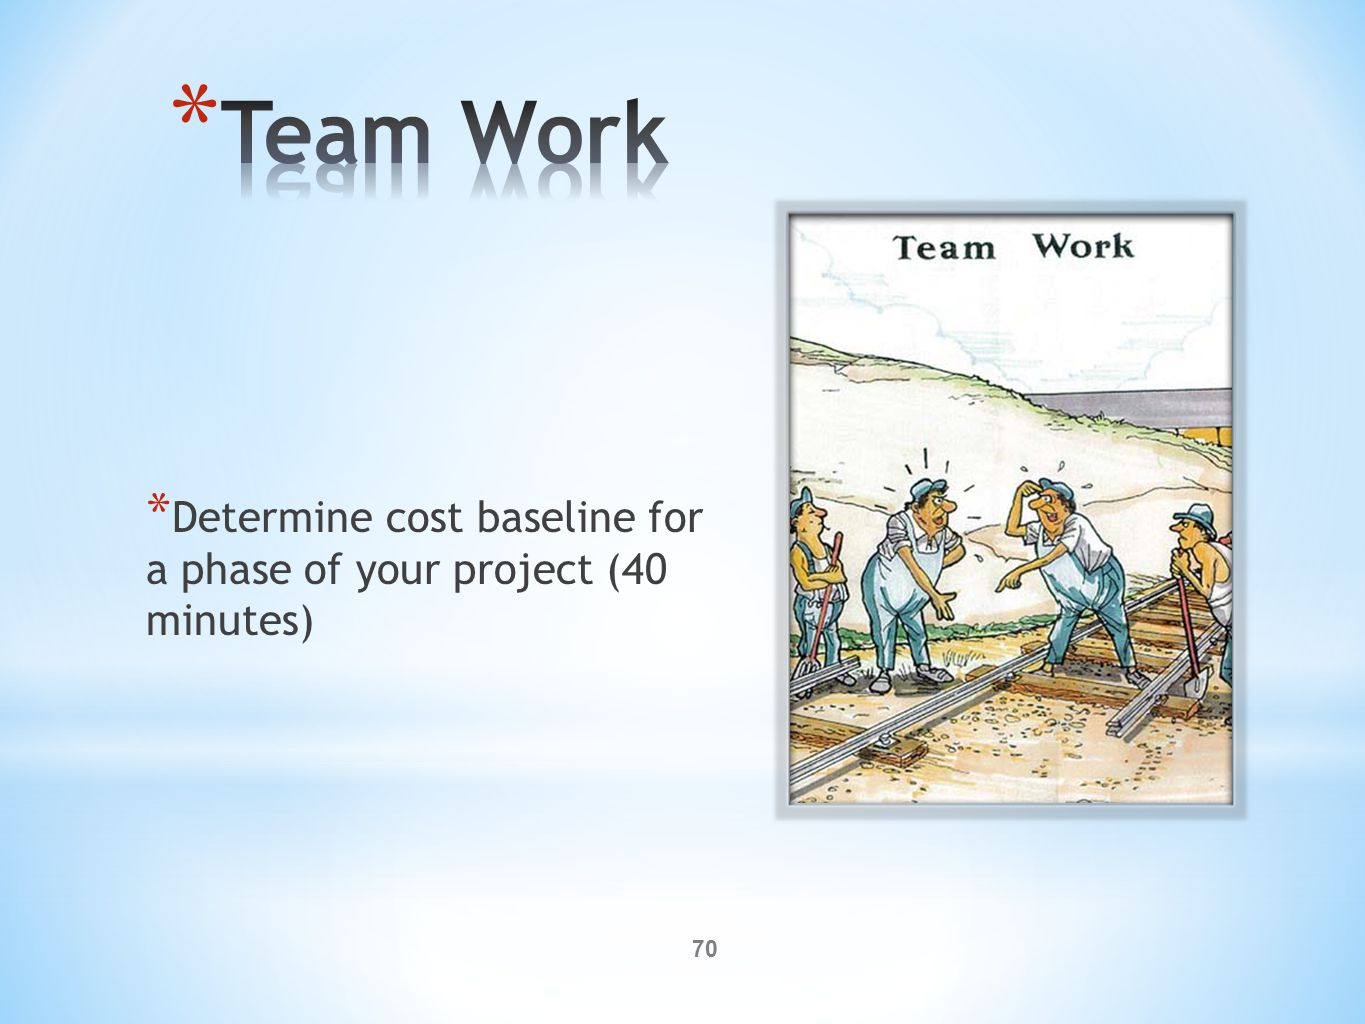 70 * Determine cost baseline for a phase of your project (40 minutes)